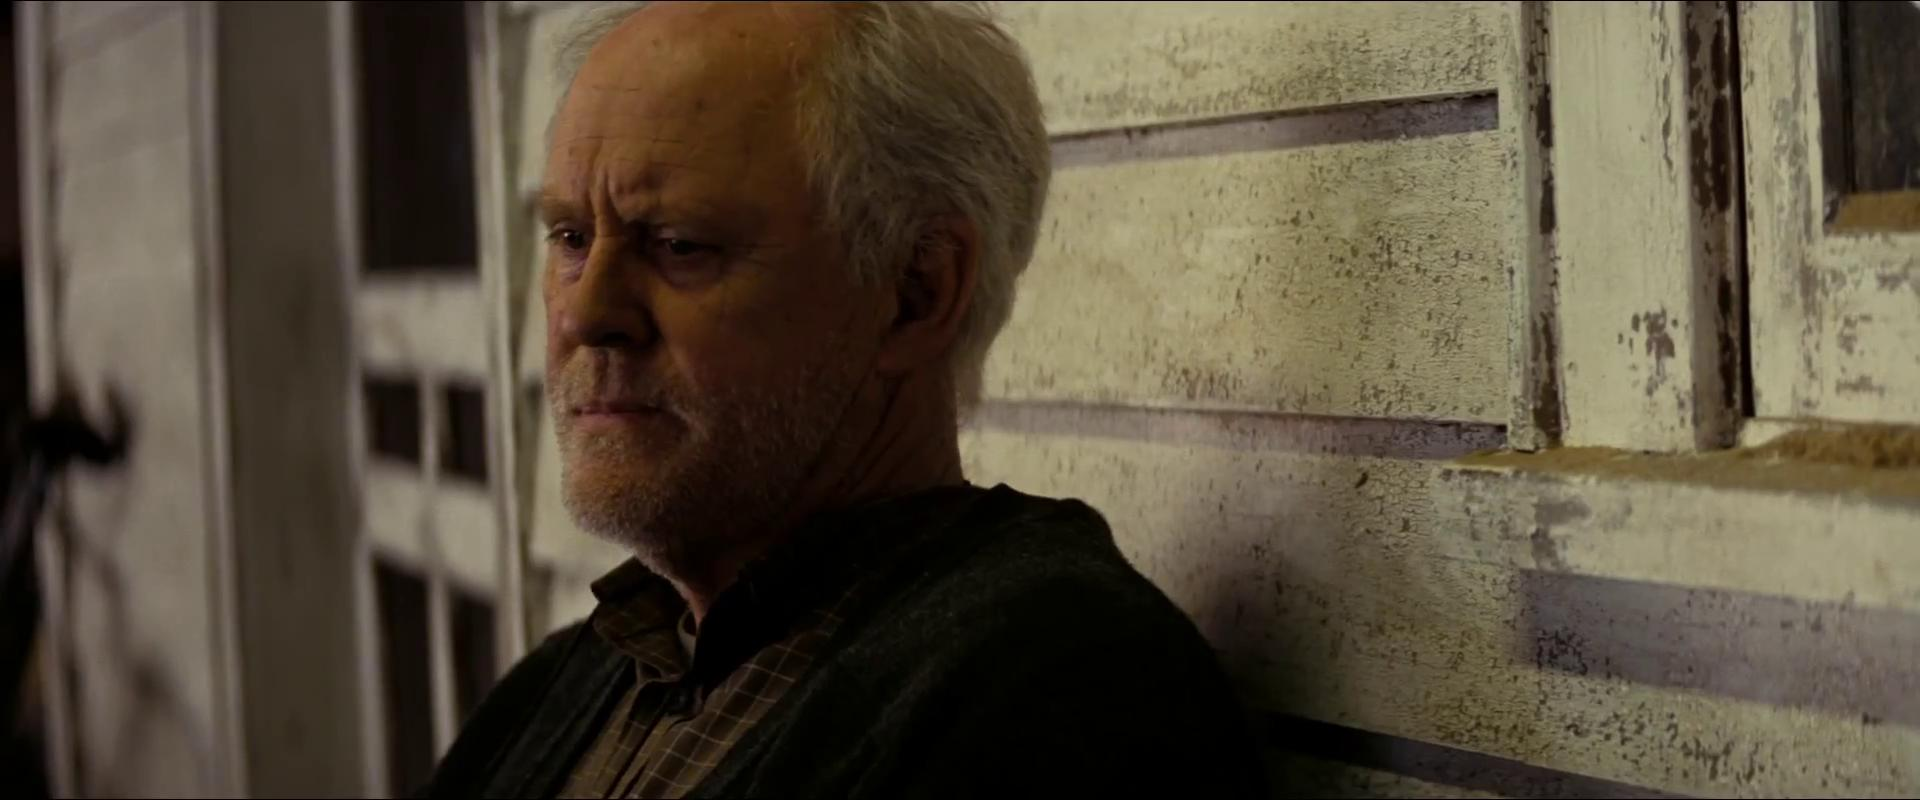 Pet Sematary Remake Casts John Lithgow Scifinow The